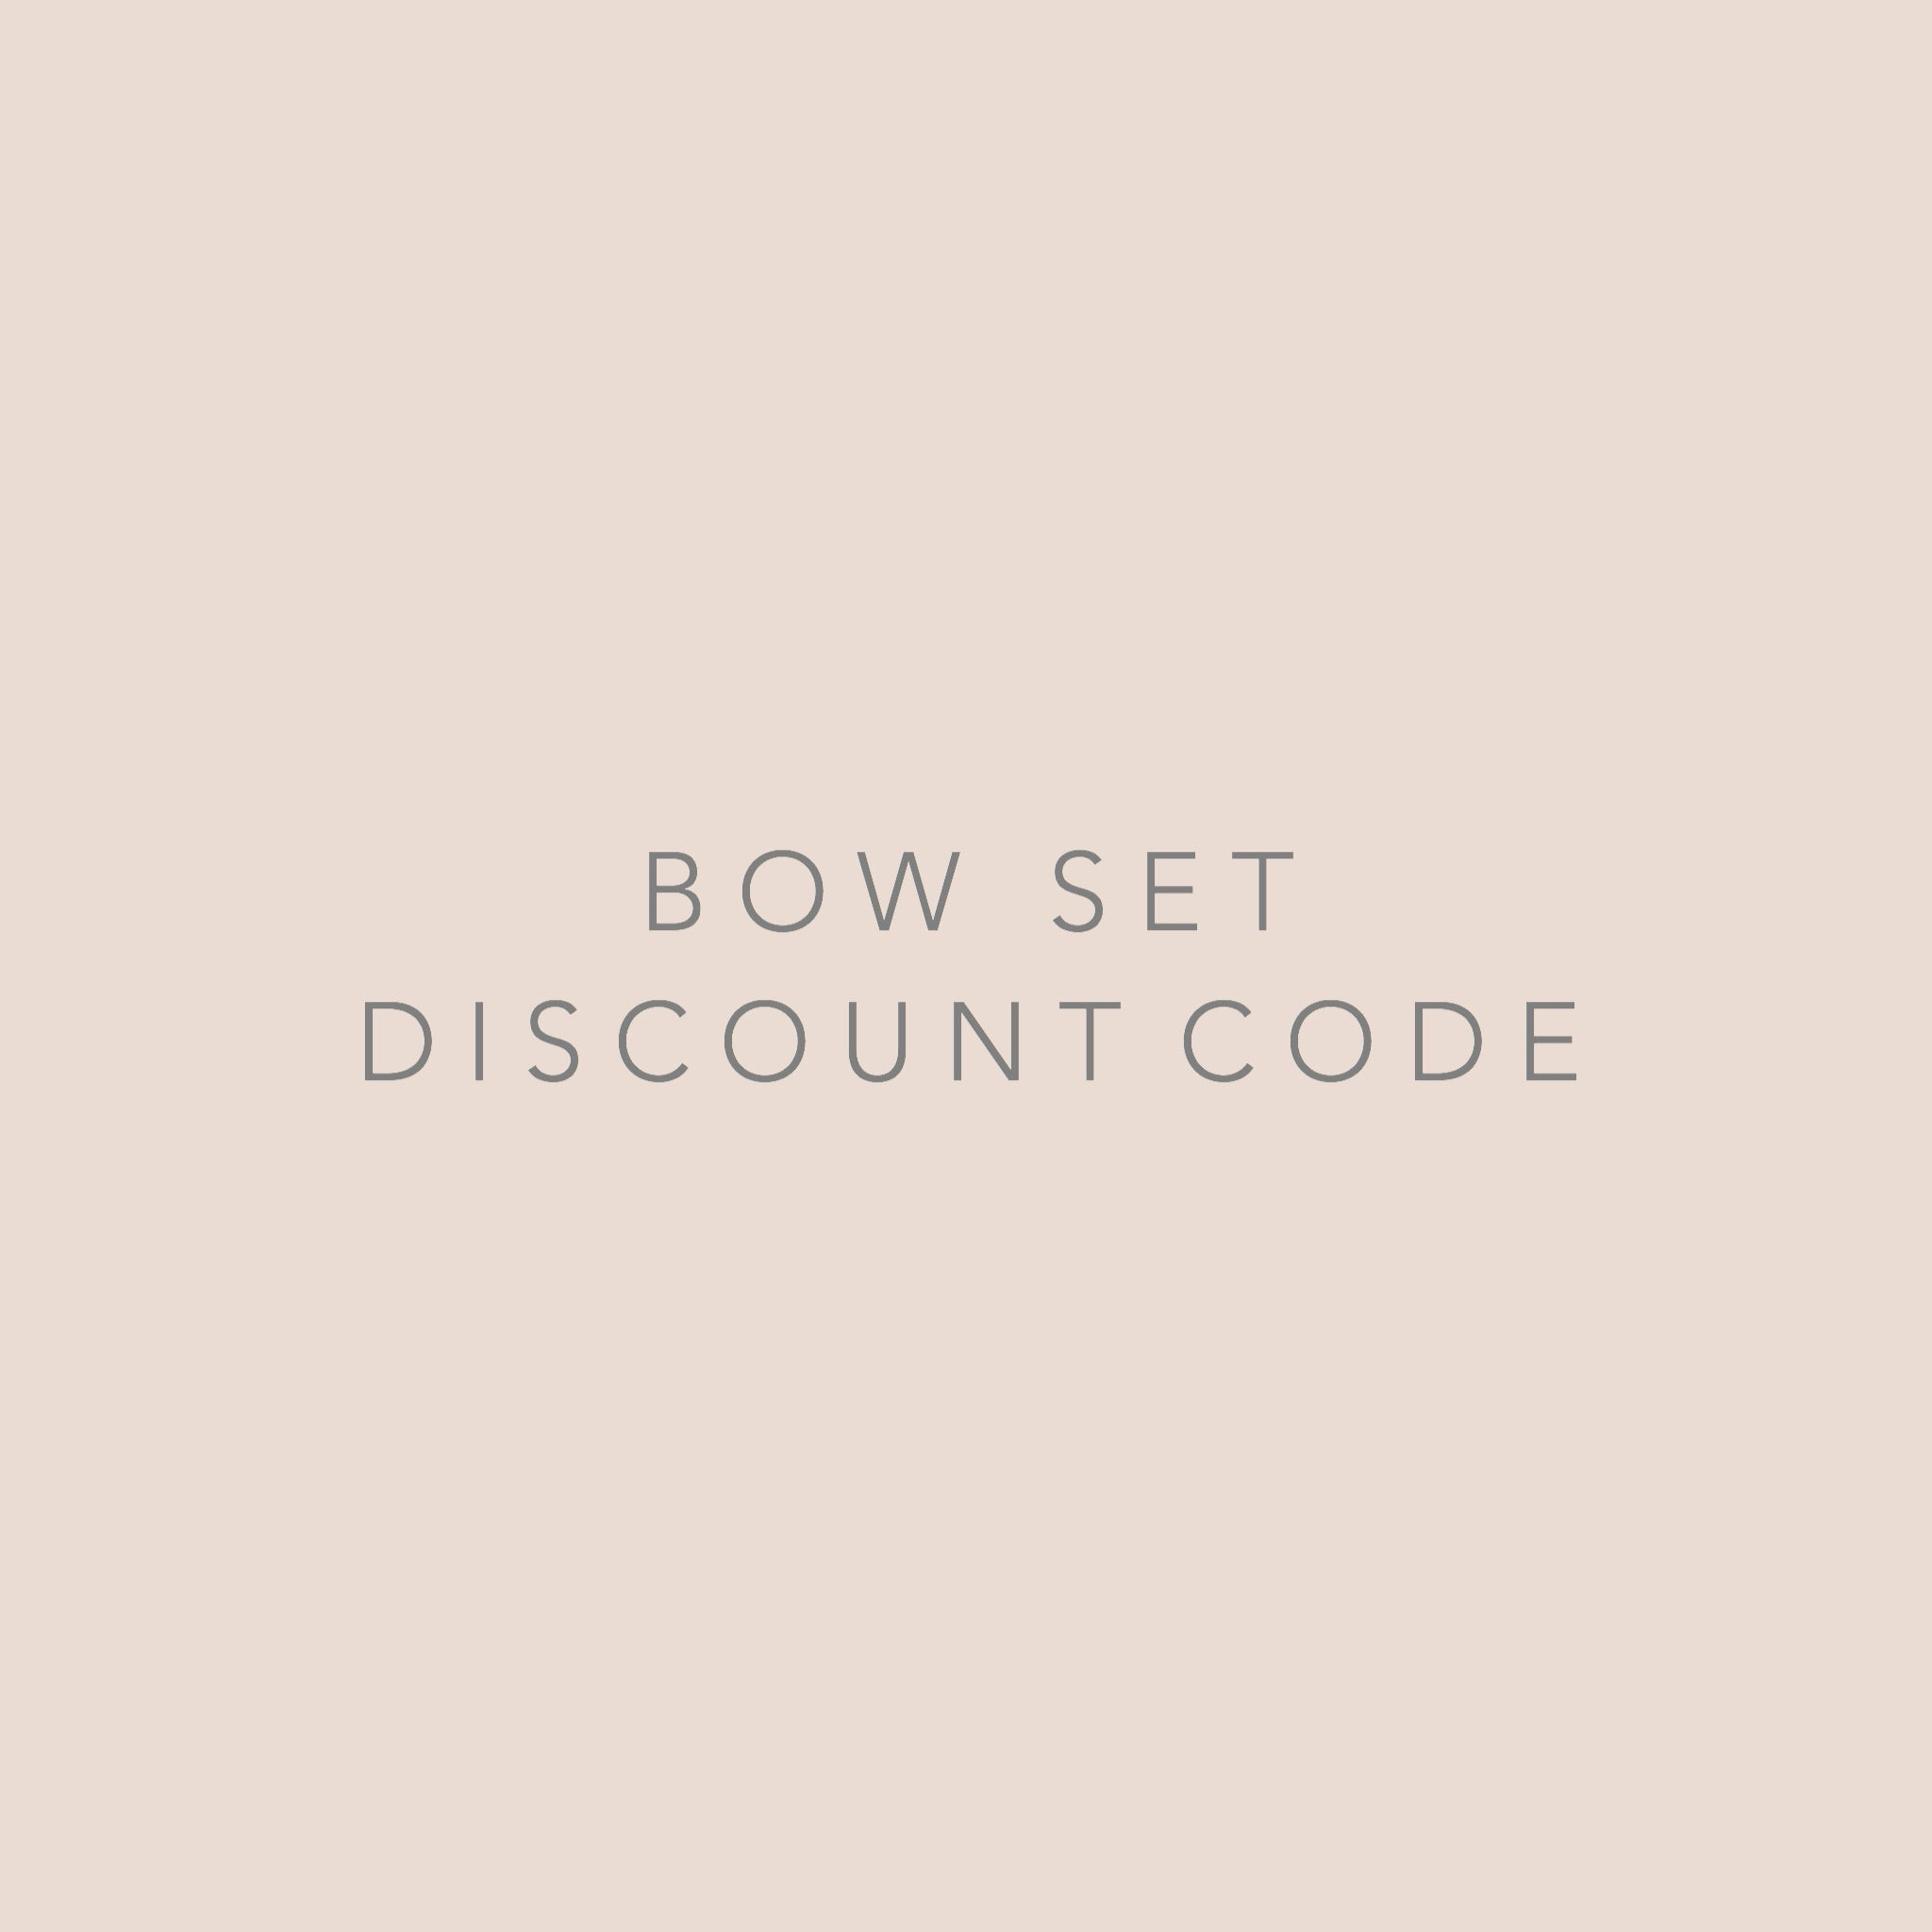 'BOWBUNDLE'  -  Bow Set Discount Code